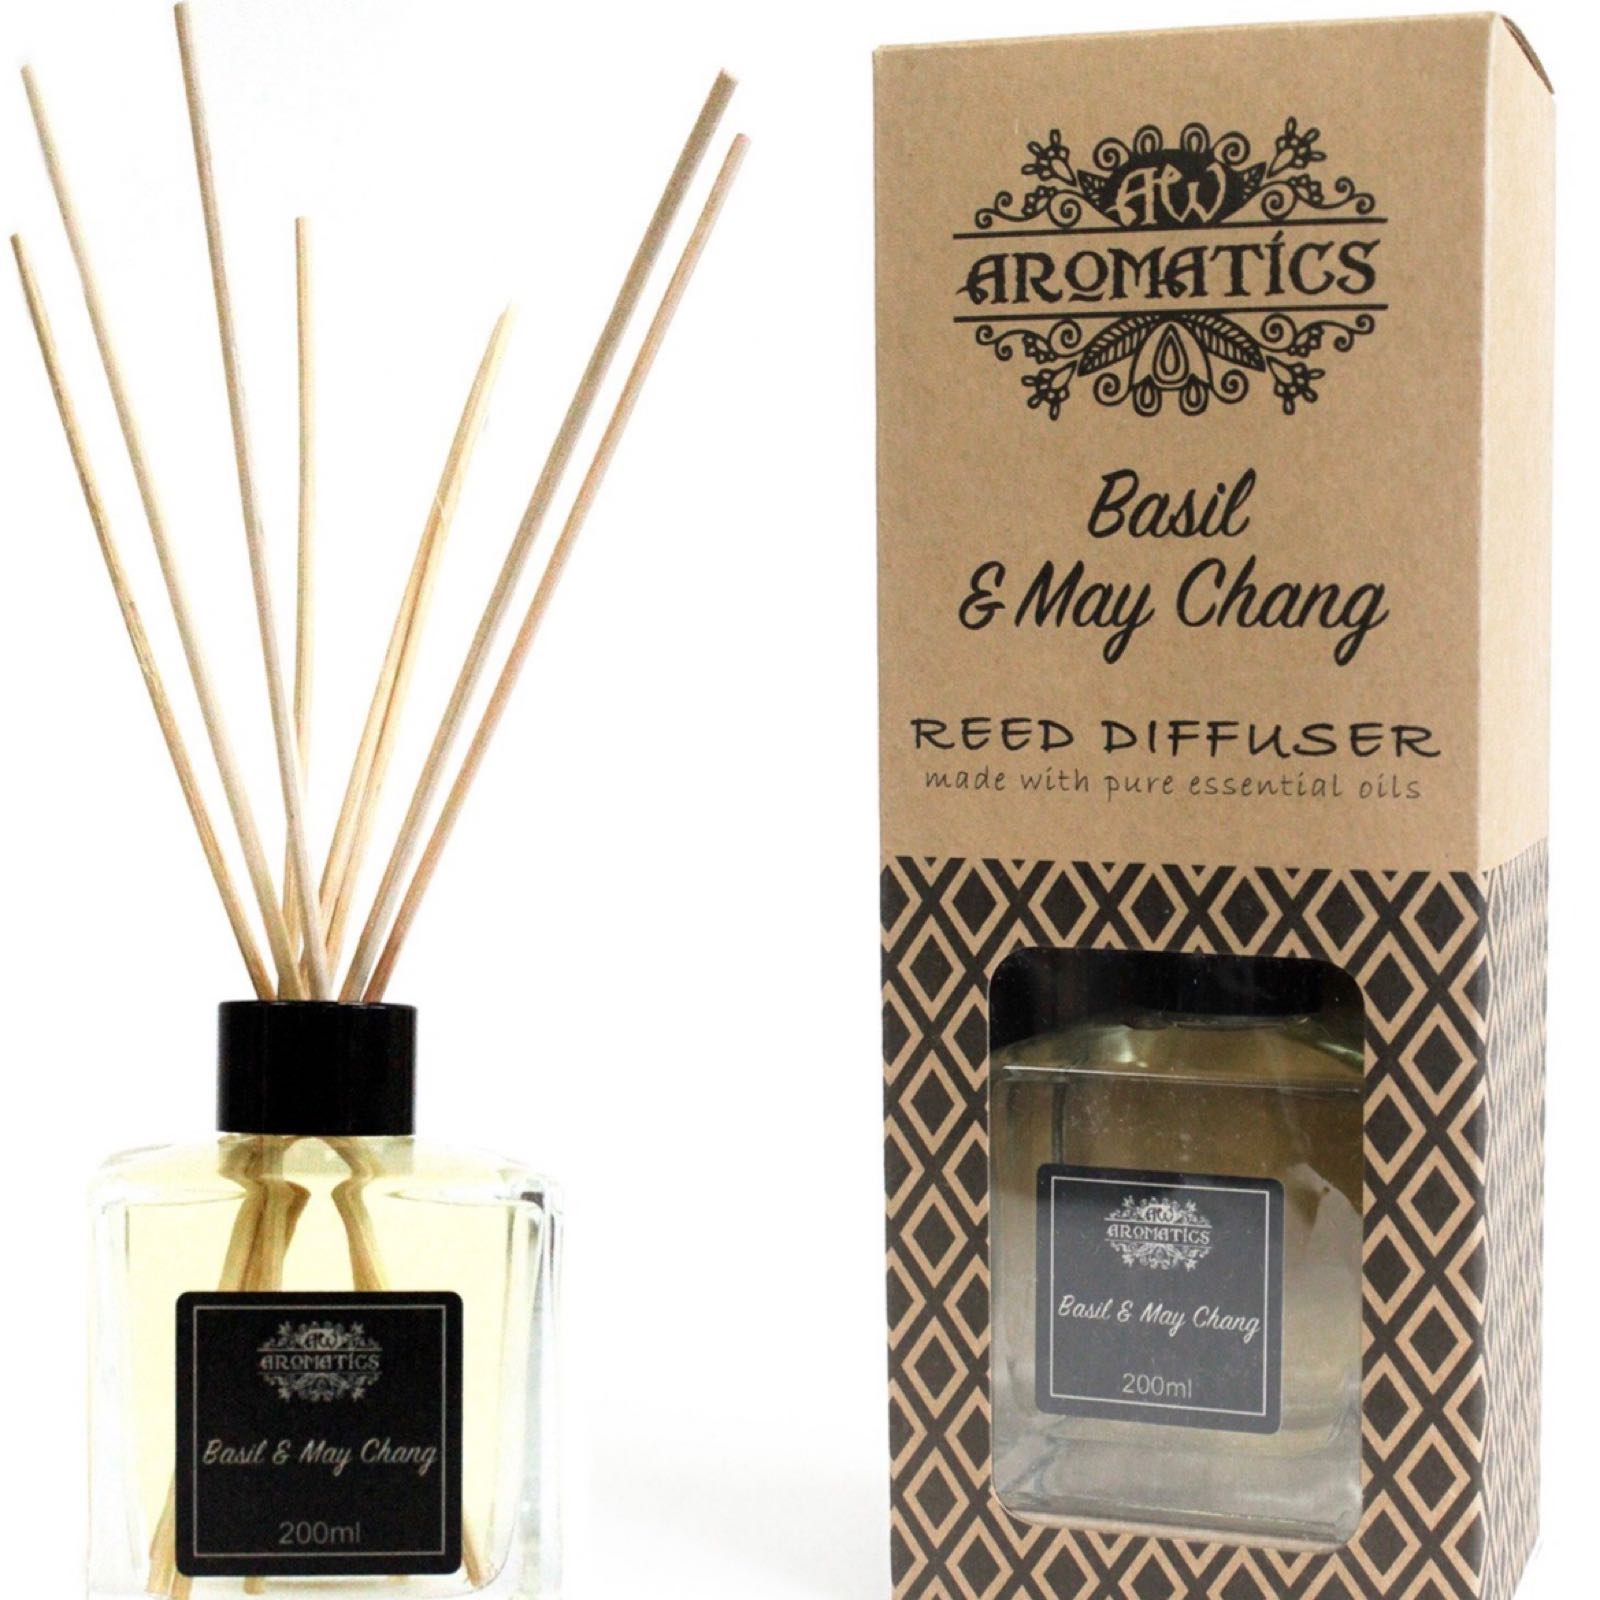 'Basil & May Chang' Essential Oil Reed Diffuser